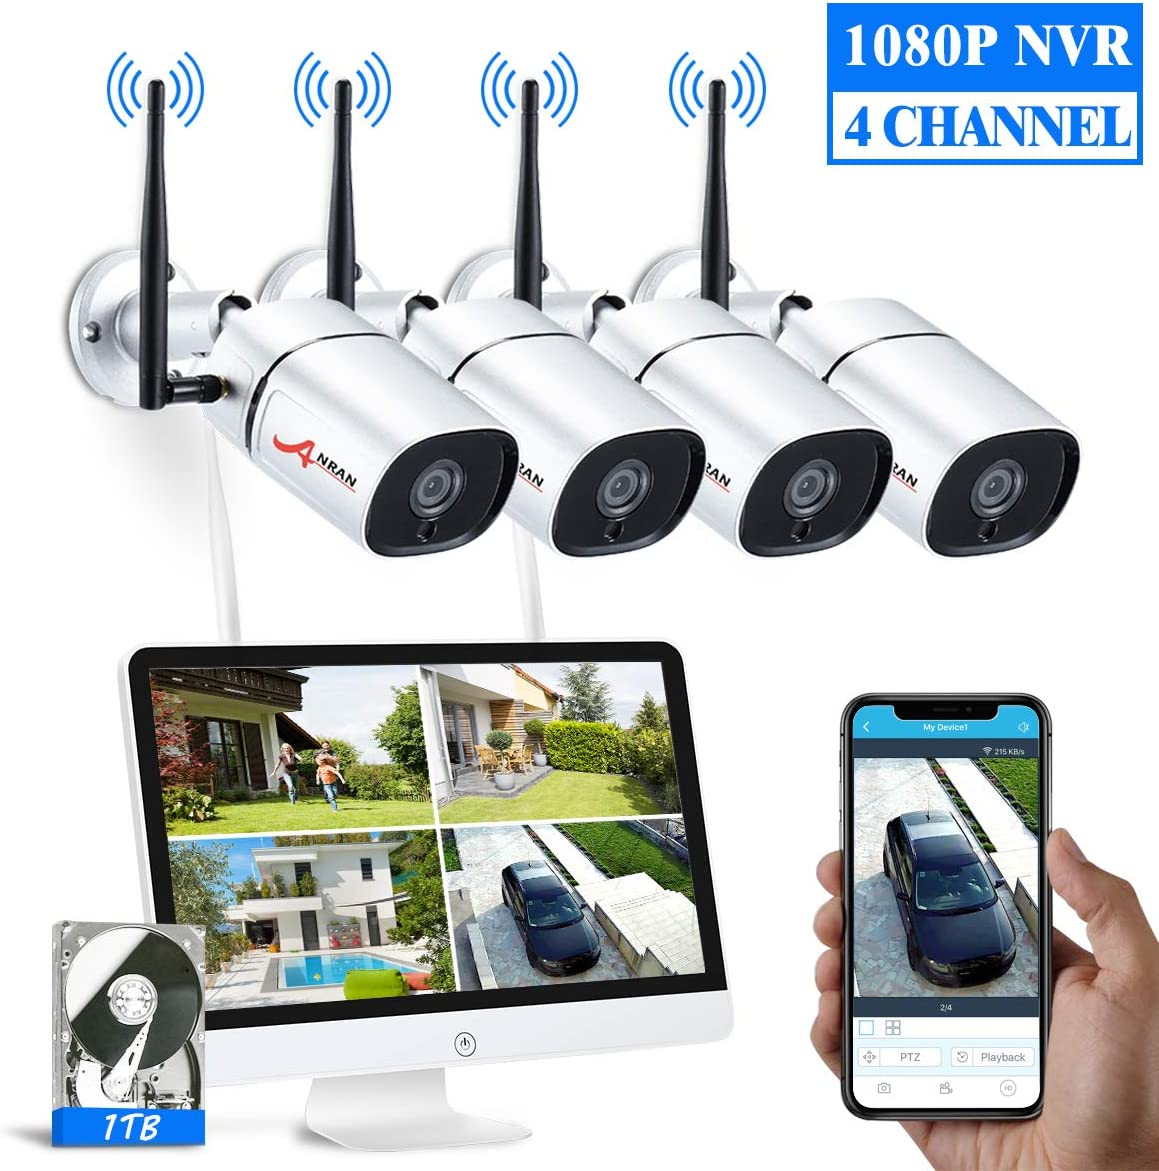 1080P Wireless Security Camera System Outdoor with 15.6 Inch LCD Monitor,ANRAN 4CH WiFi NVR Kits 4Pcs Outdoor Indoor IP Cameras with Night Vision,Remote View,1TB Hard Drive, Motion Detection